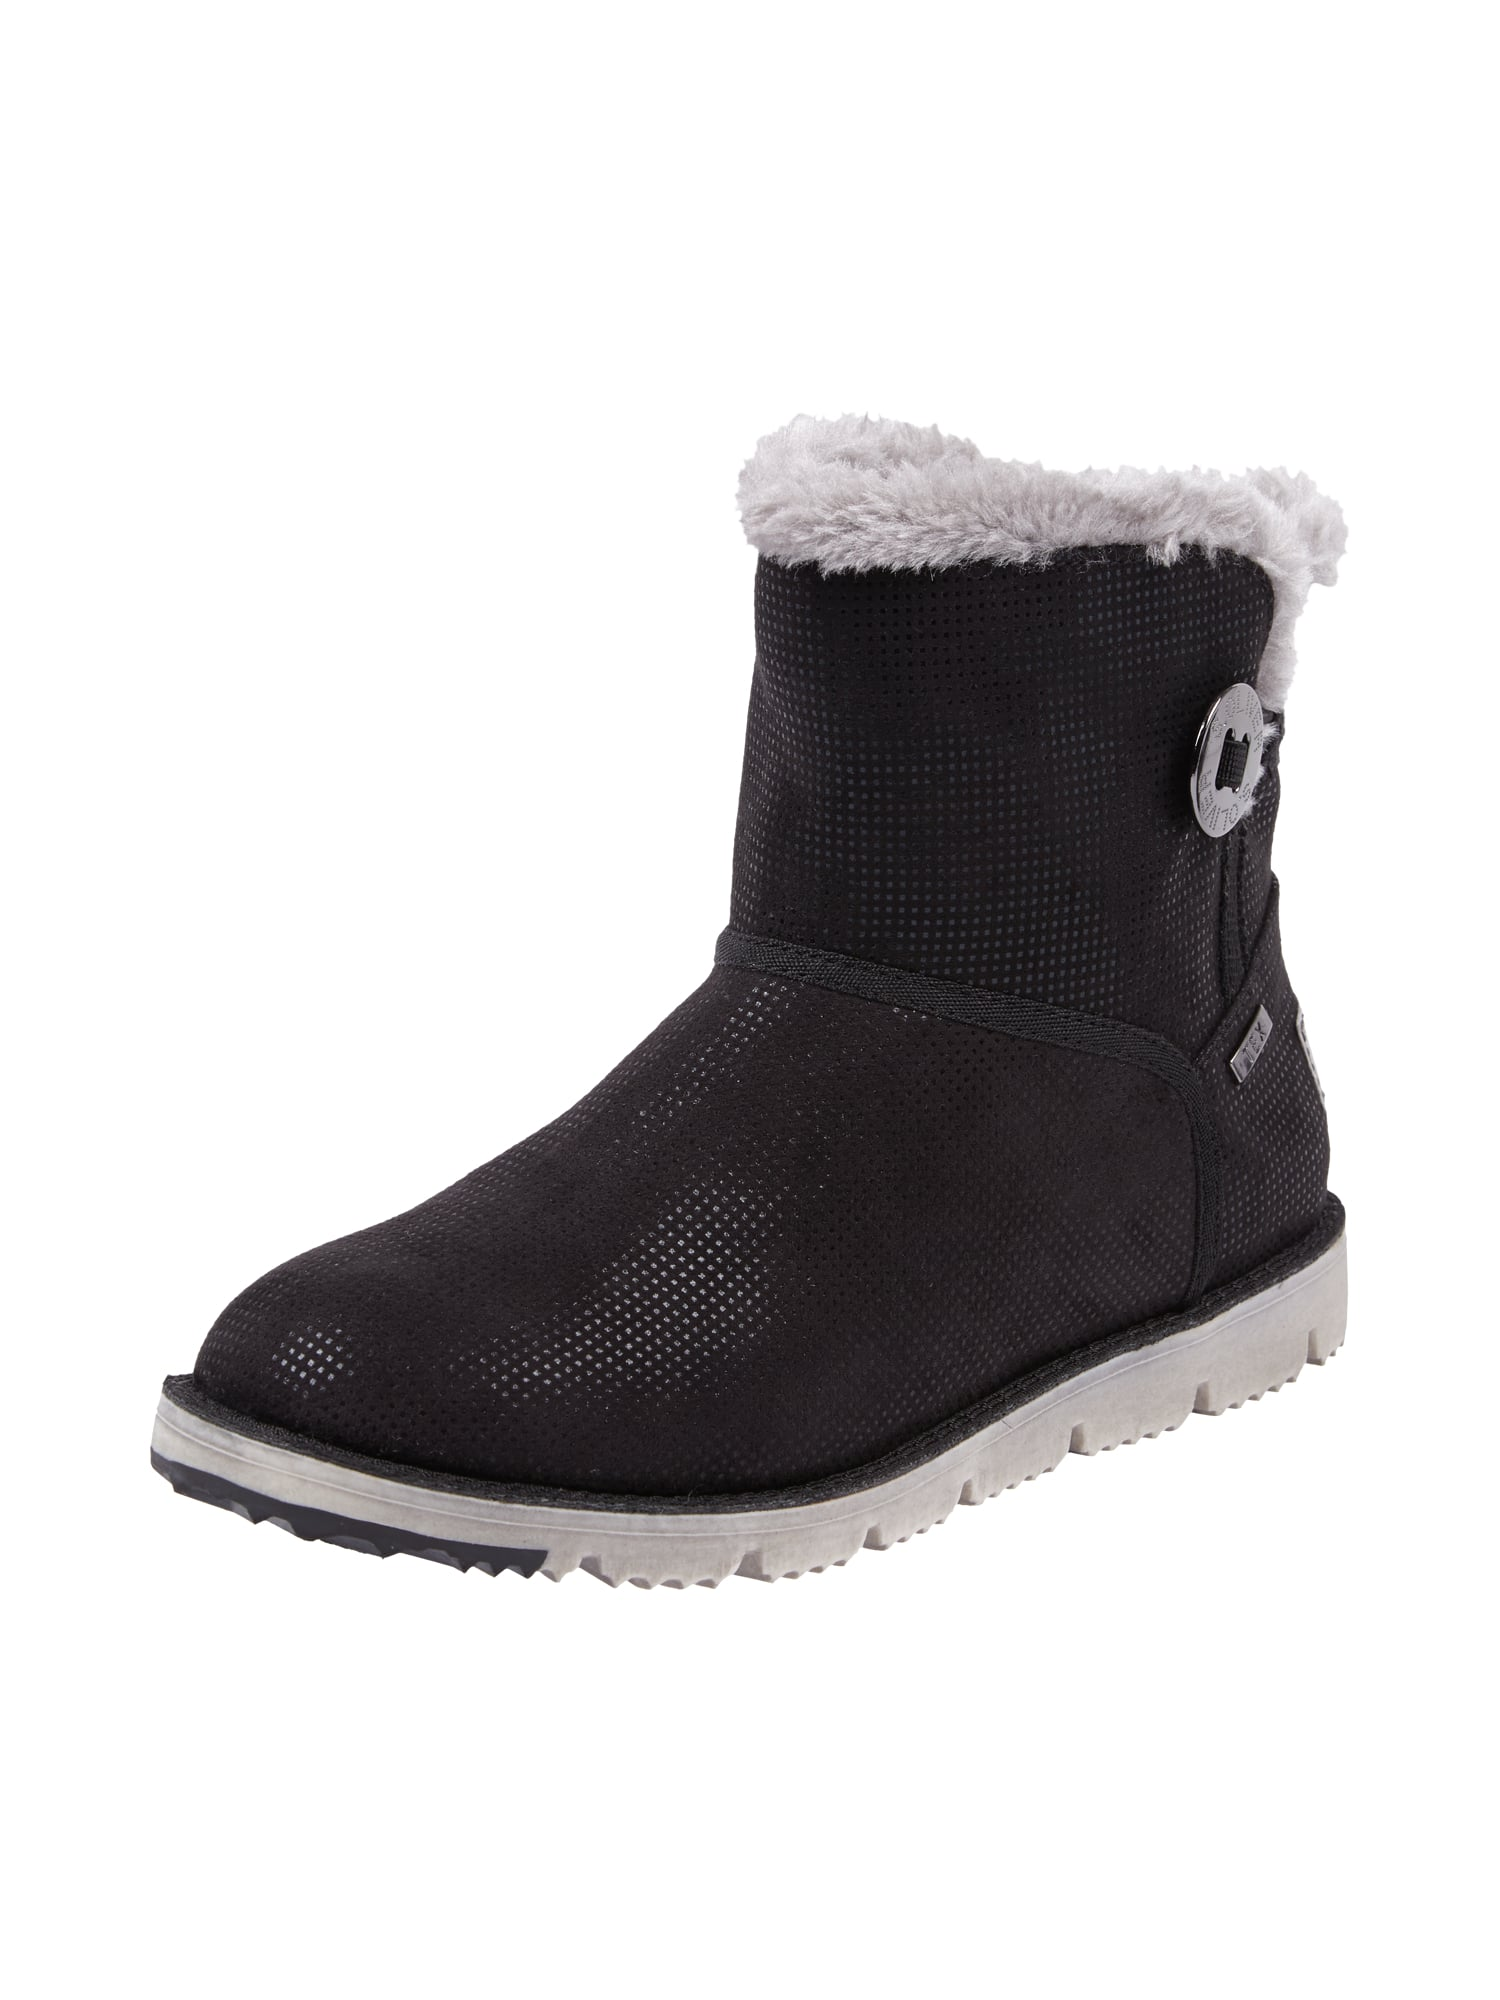 new concept 7f0fb d2046 S-OLIVER-RED-LABEL Moonboots mit Fellfutter in Grau ...